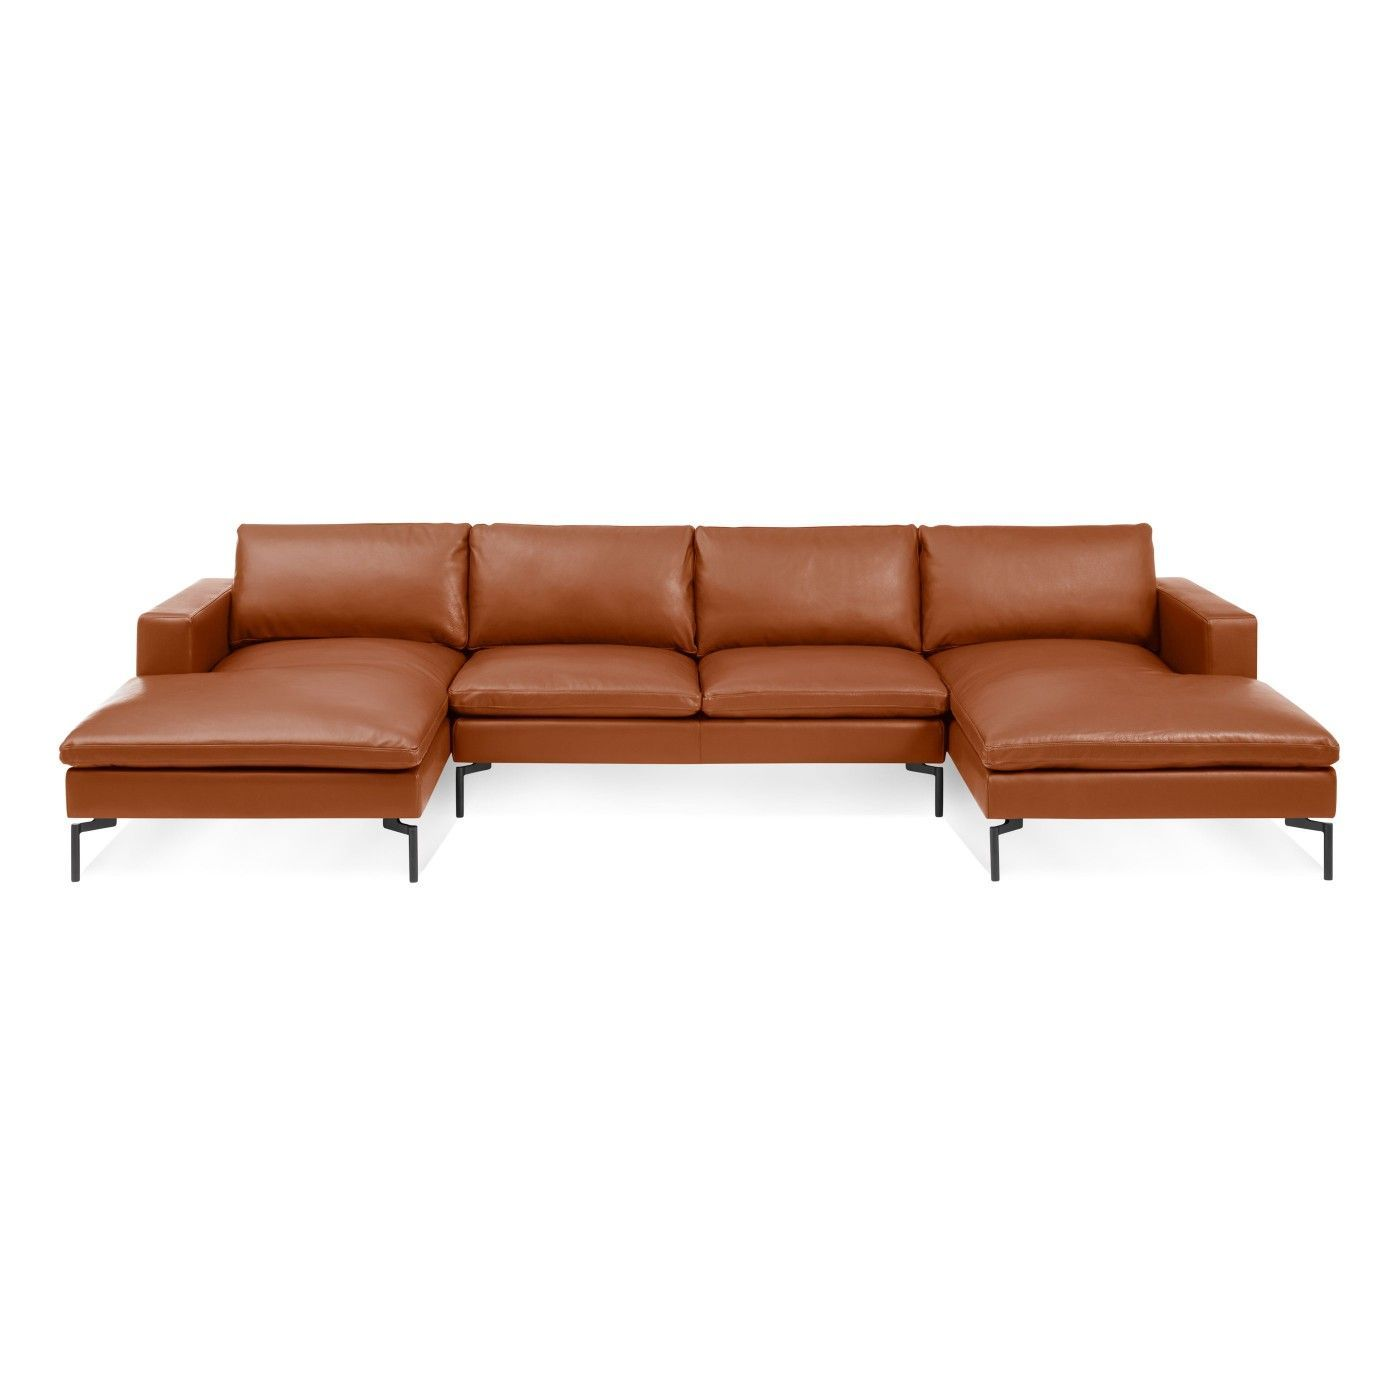 New Standard U Shaped Leather Sectional Sofa Toffee Leather Black Leathersectionalsofas With Images Leather Sectional Sofas Leather Sectional U Shaped Sectional Sofa